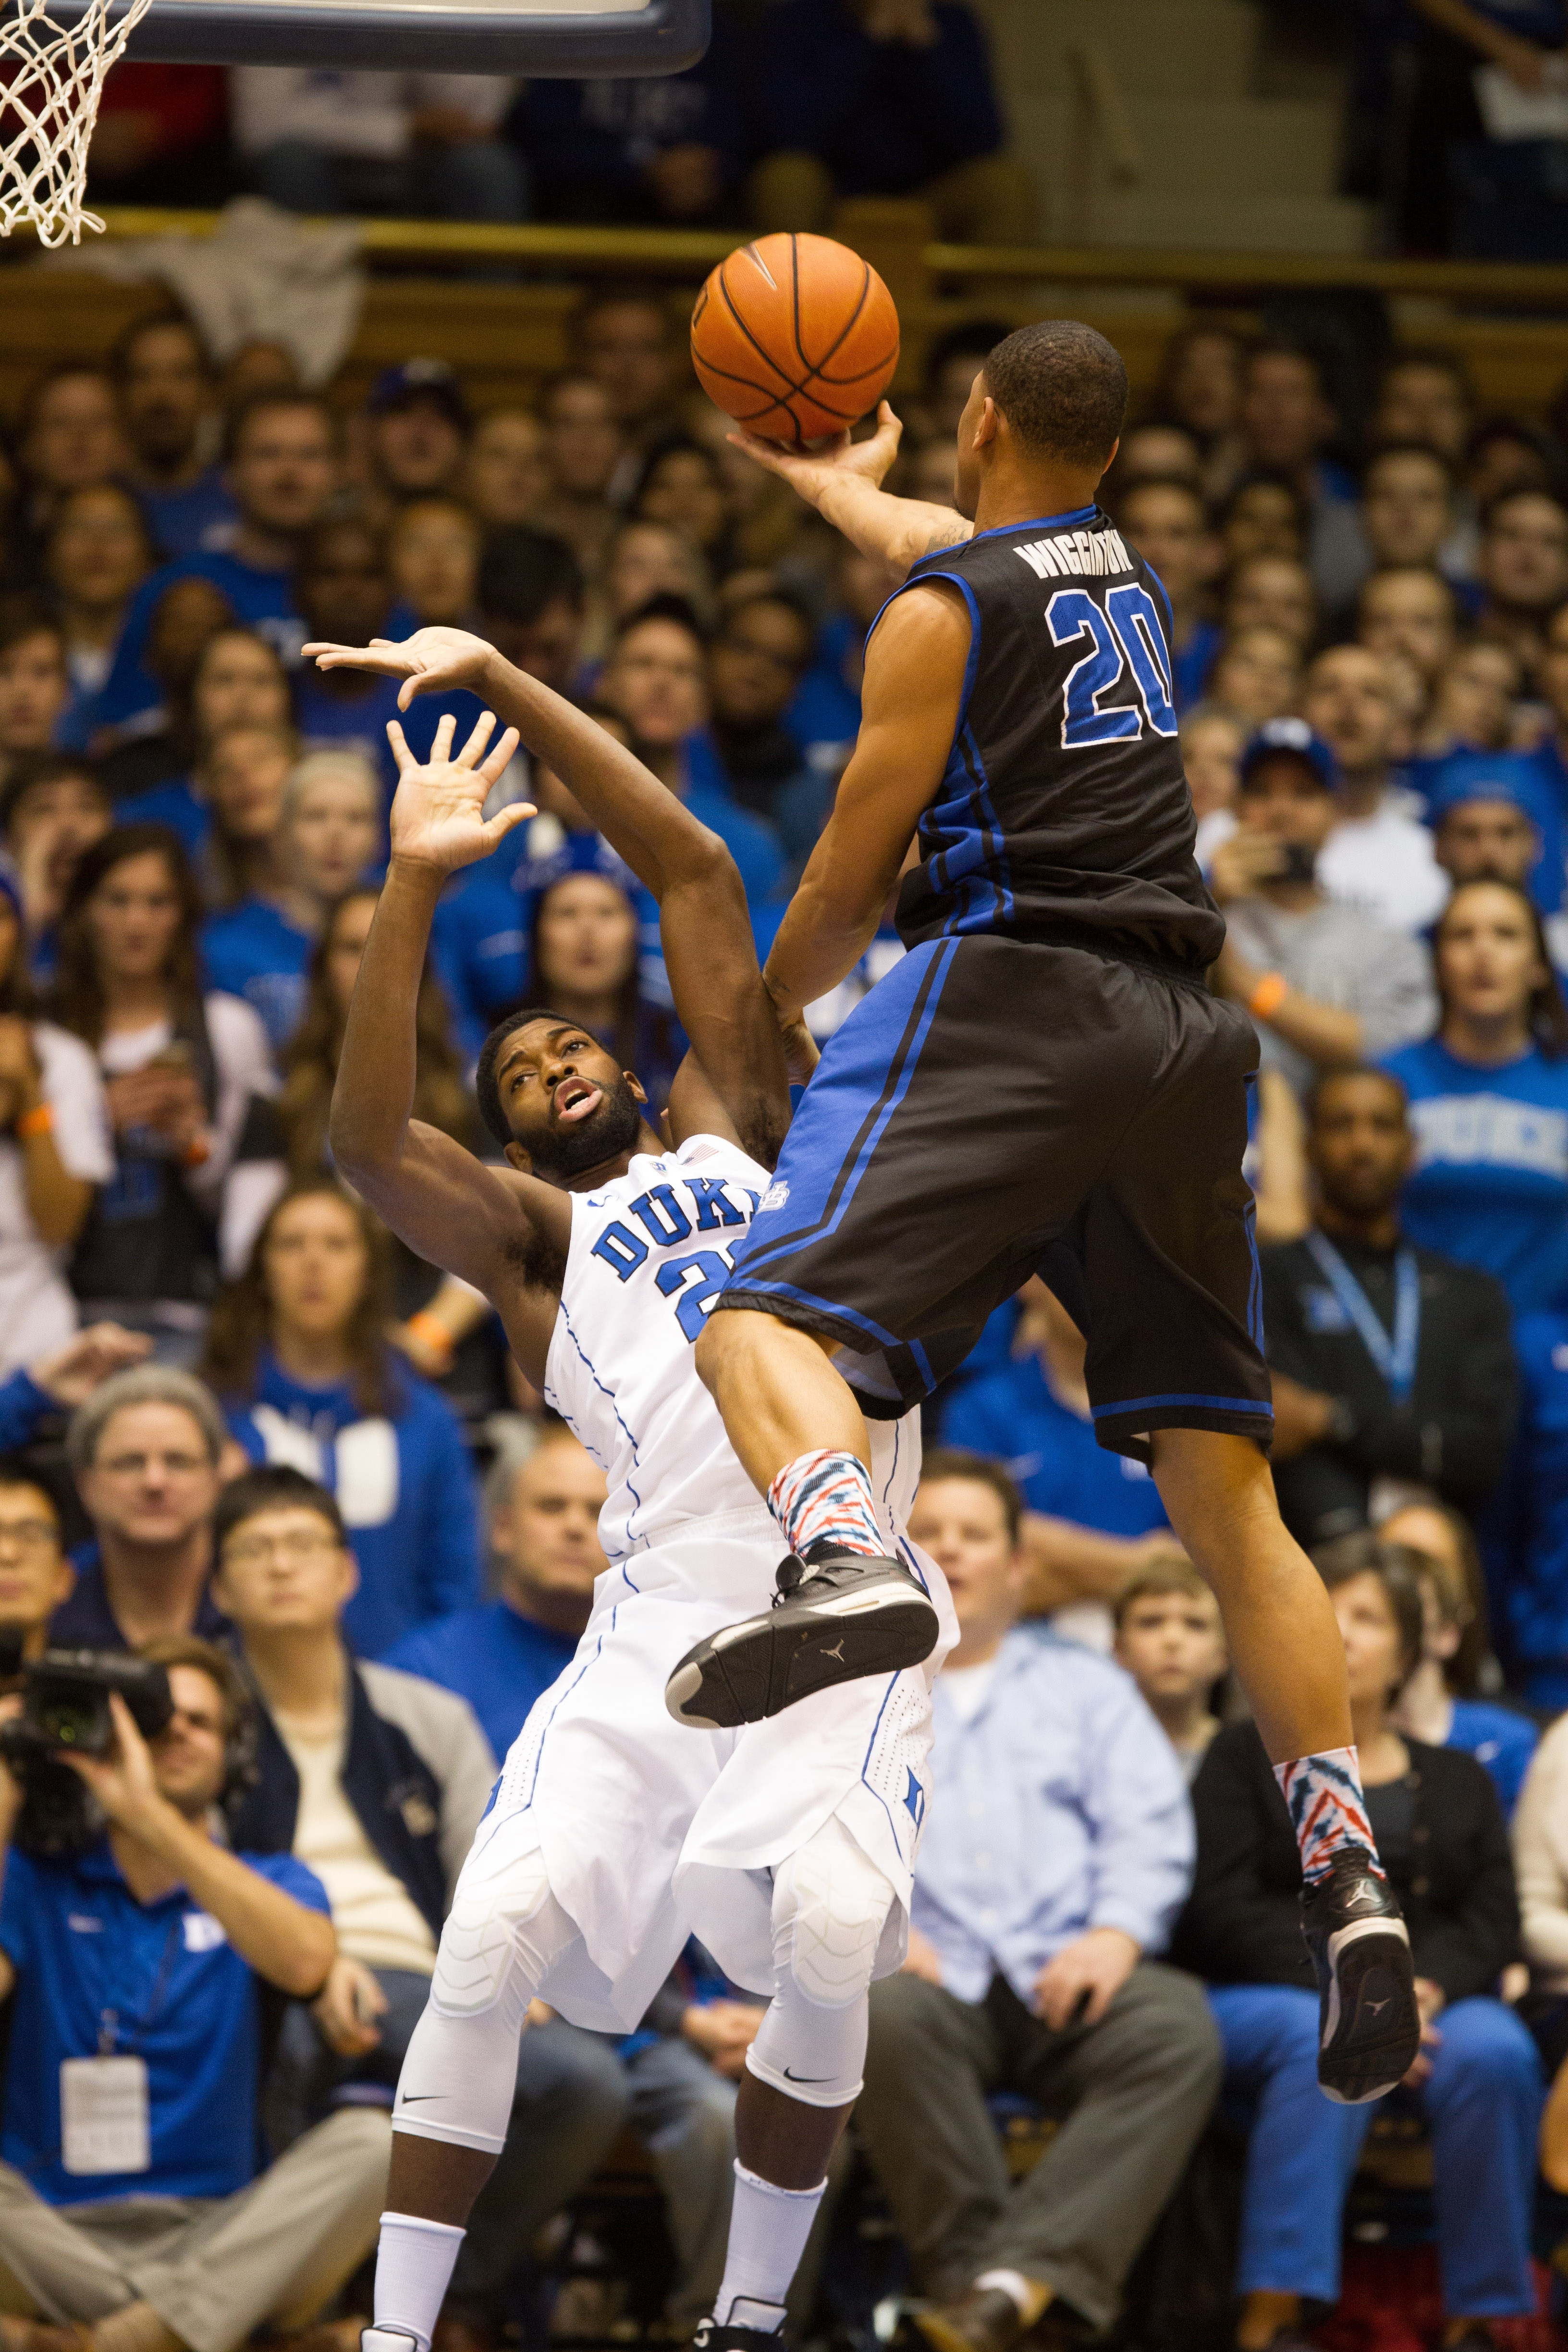 UB's Rodell Wigginton drives to the basket against Duke's Amile Jefferson on Saturday in Durham, N.C.